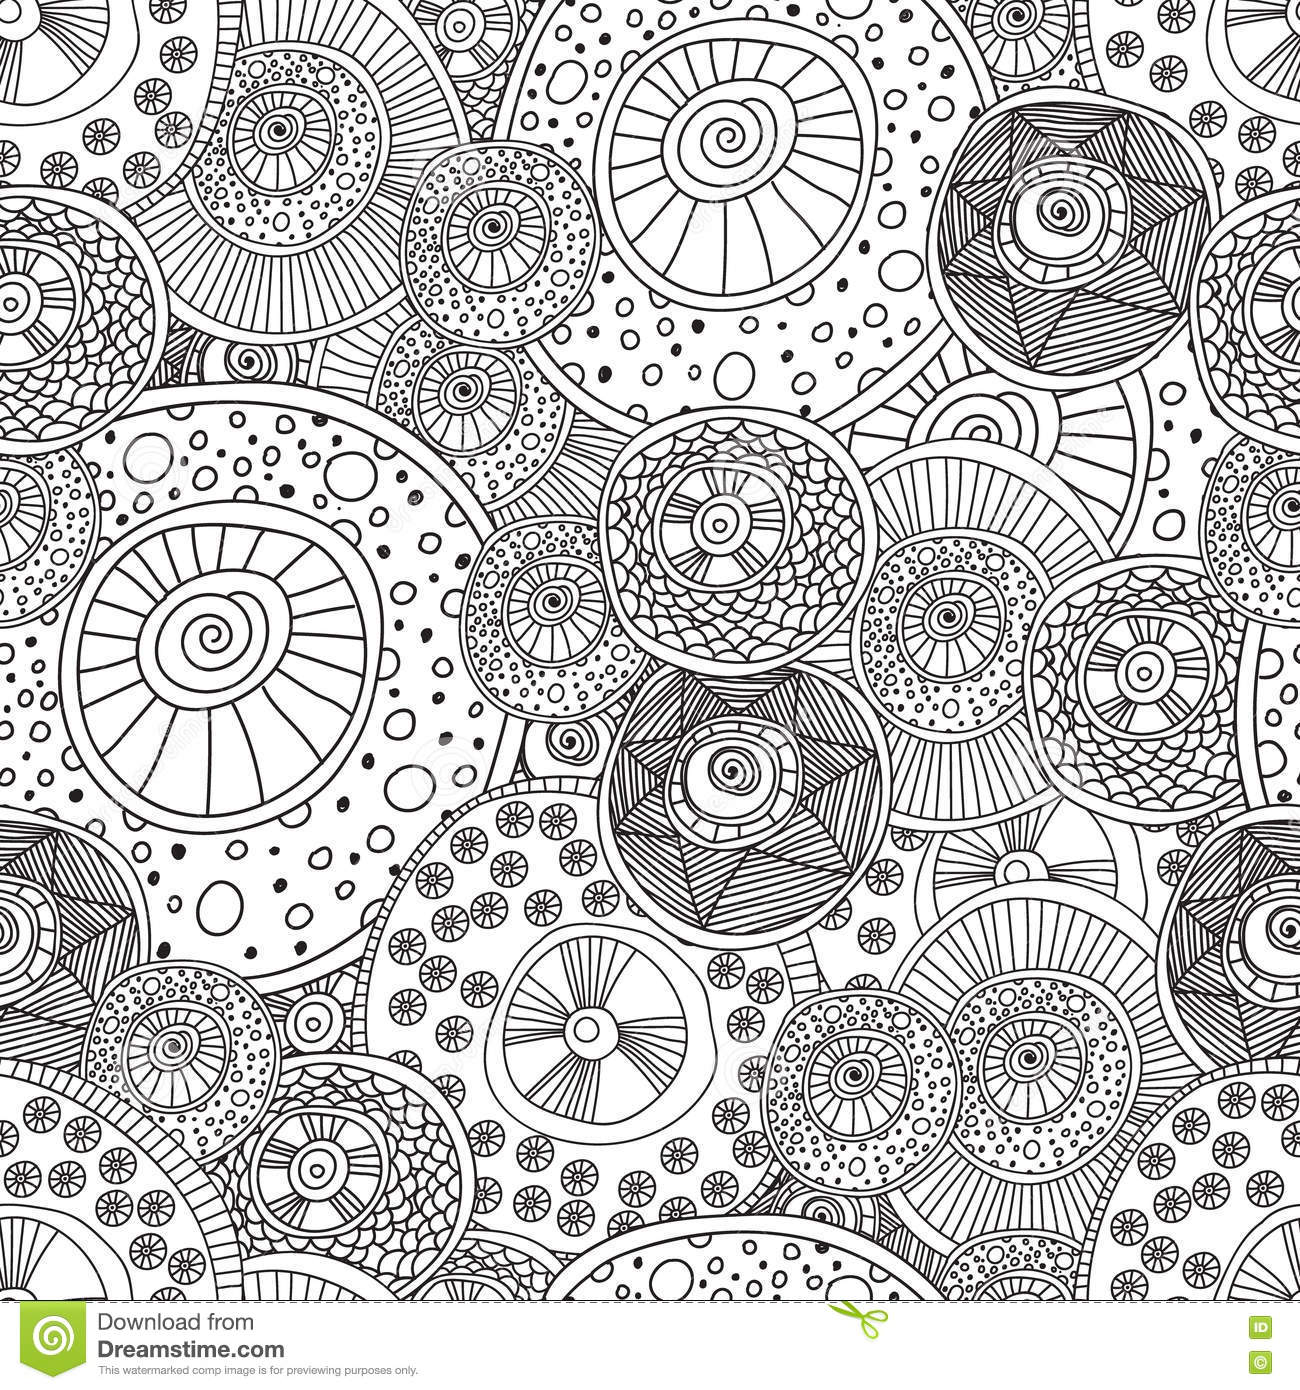 circle abstract coloring pages - photo#5